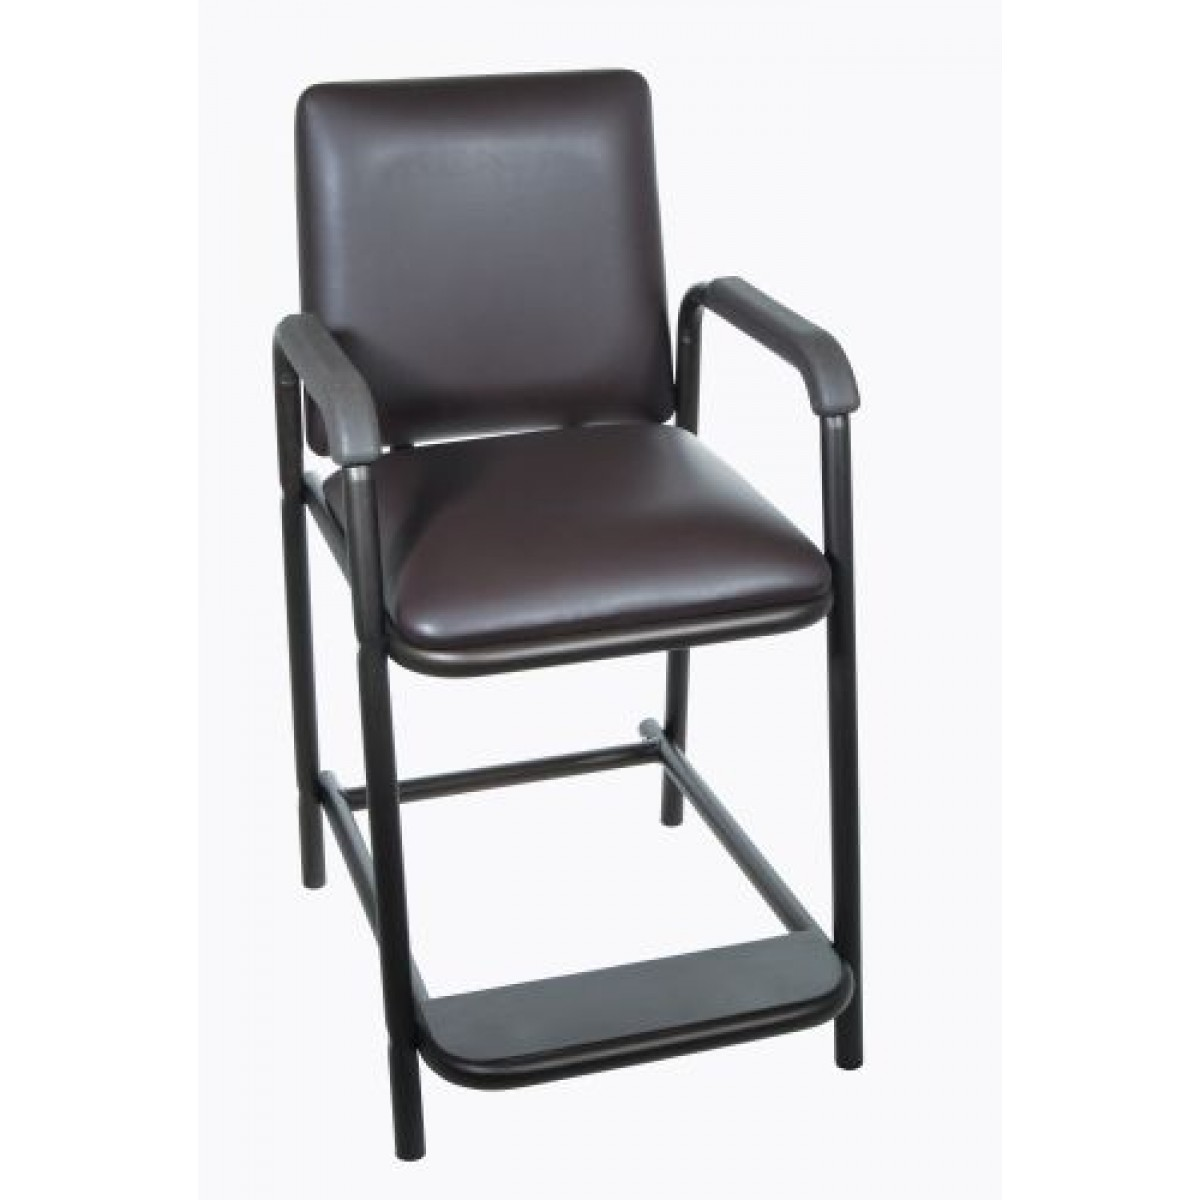 padded high chair best dining chairs modern hip with seat by drive medical 17100 bv